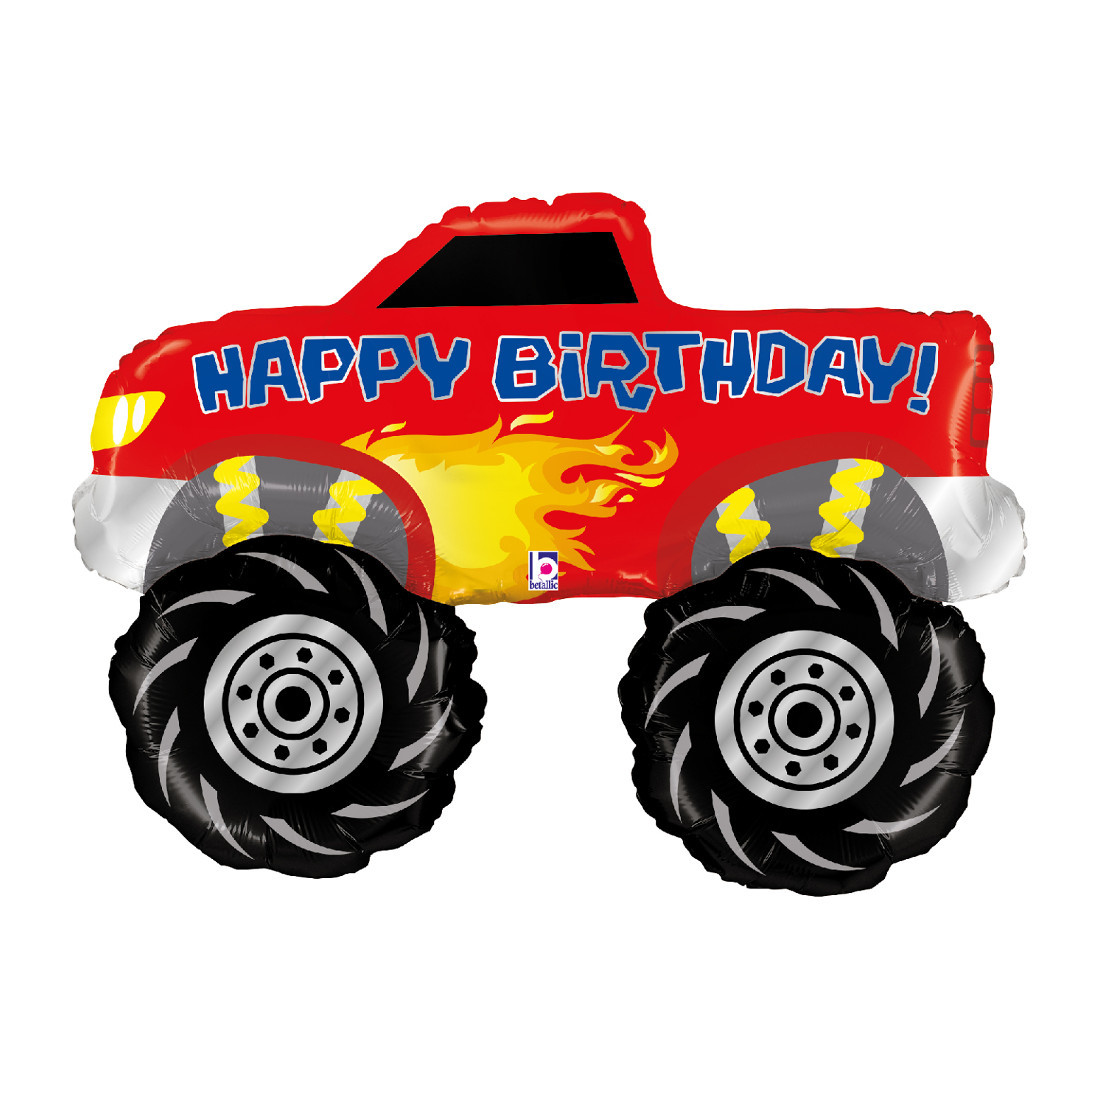 HAPPY BIRTHDAY MONSTER TRUCK 102 CM/ 40""